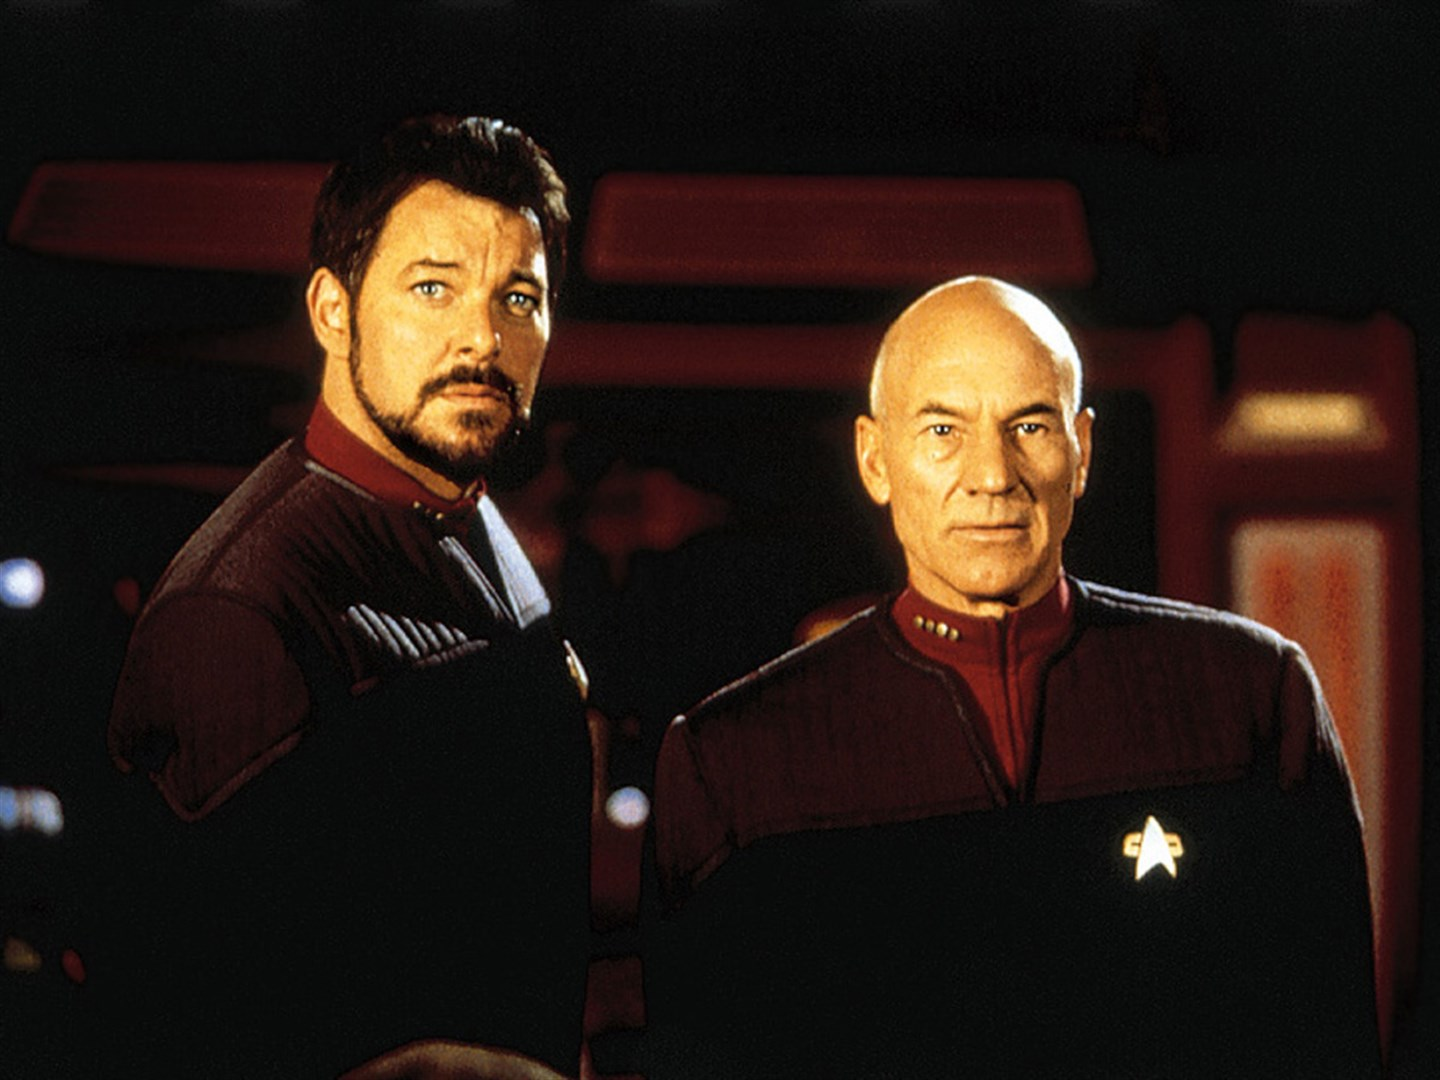 Best Paramount Plus shows and movies - star trek: first contact